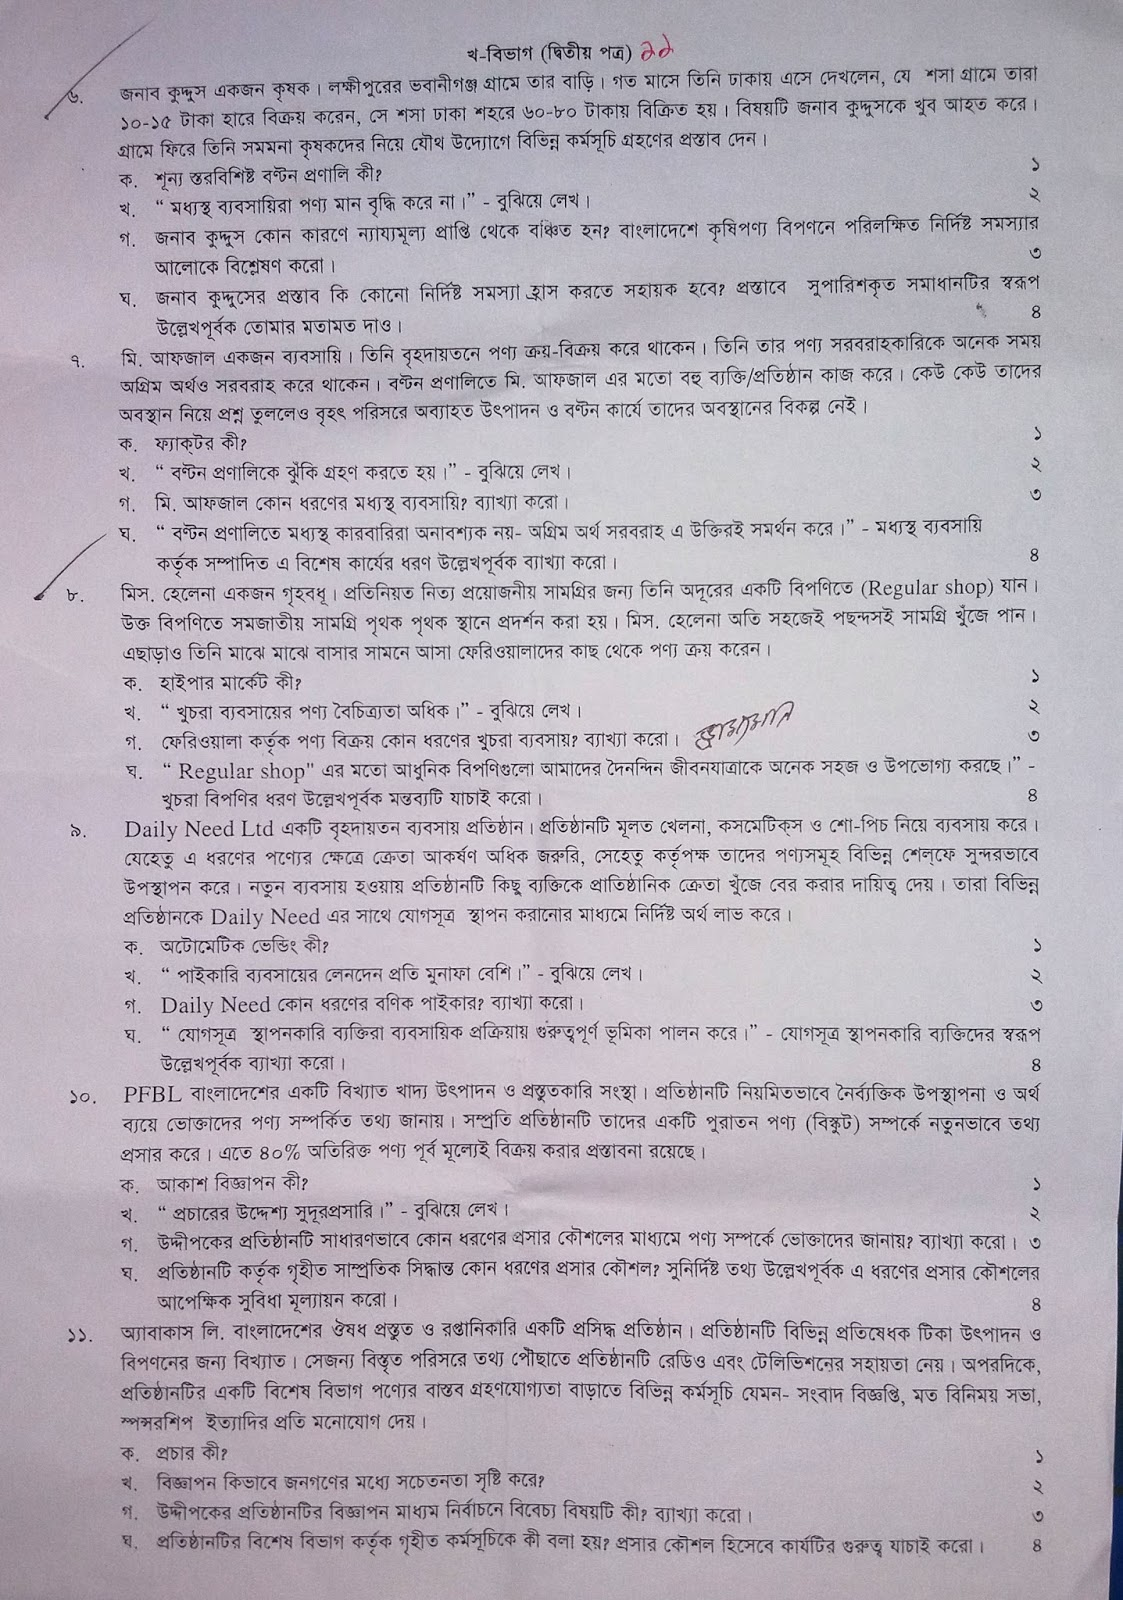 HSC Production Management & Marketing 2nd Paper Suggestion